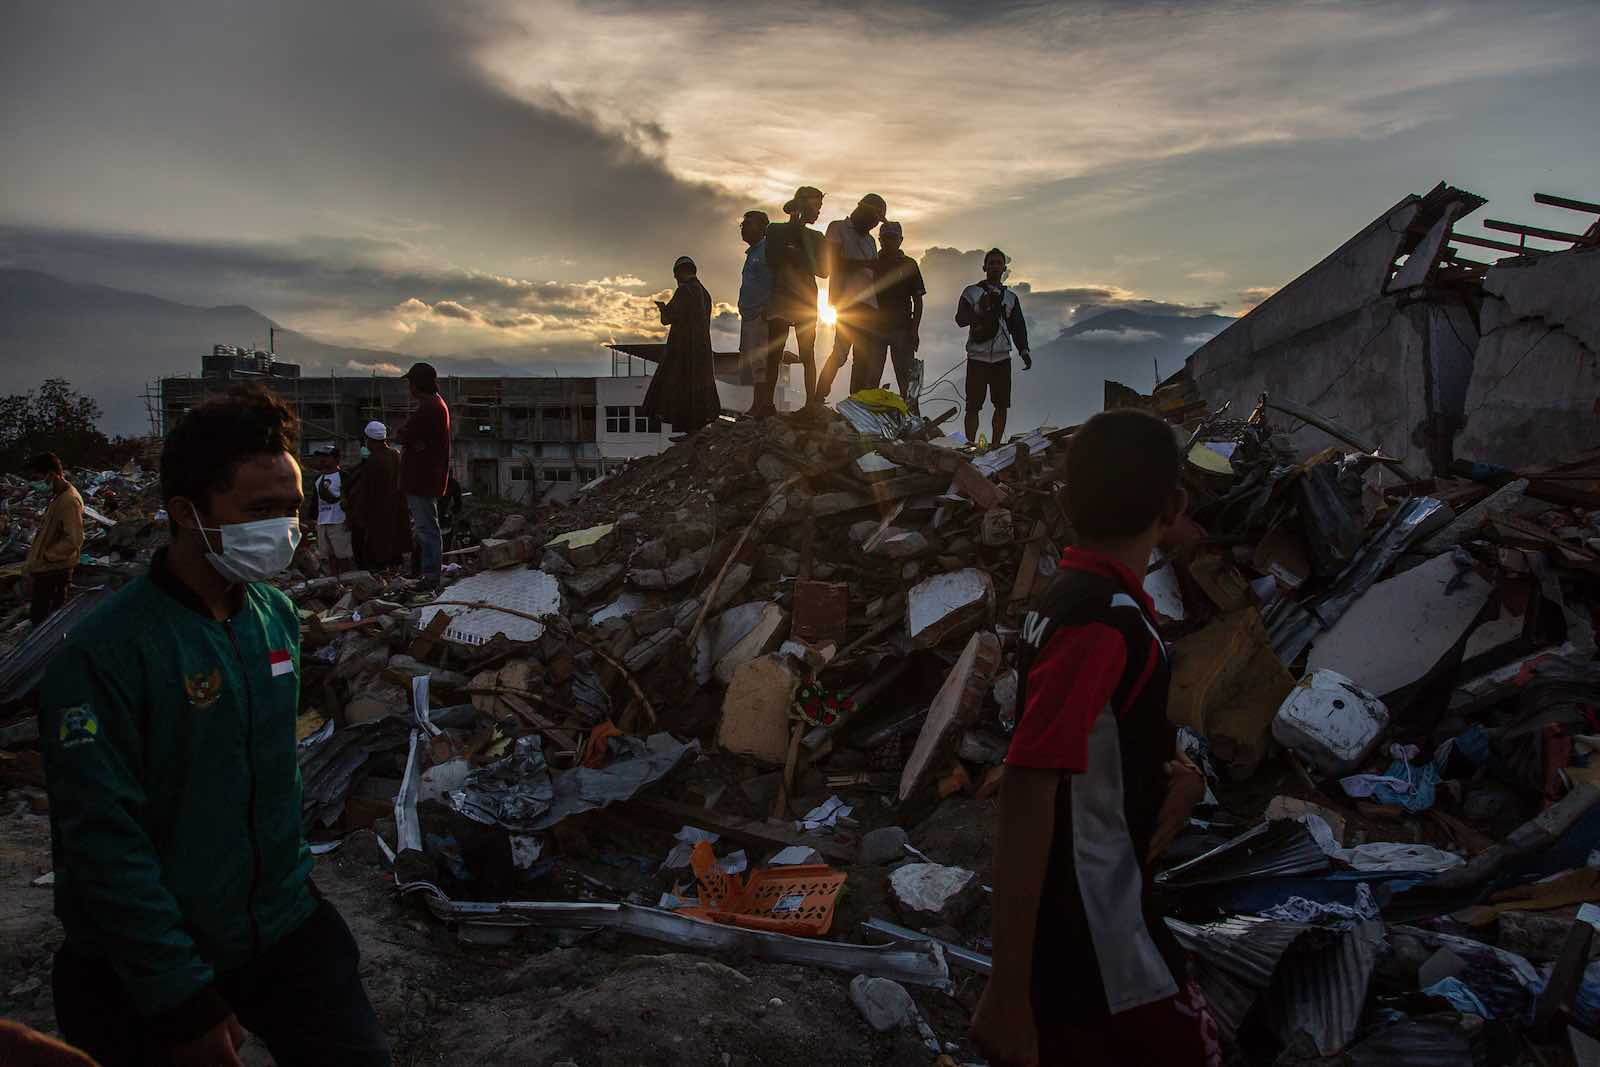 Aftermath of an earthquake and tsunami that struck the island of Sulawesi in September 2018, in Palu, Indonesia (Ulet Ifansasti/Getty Images)